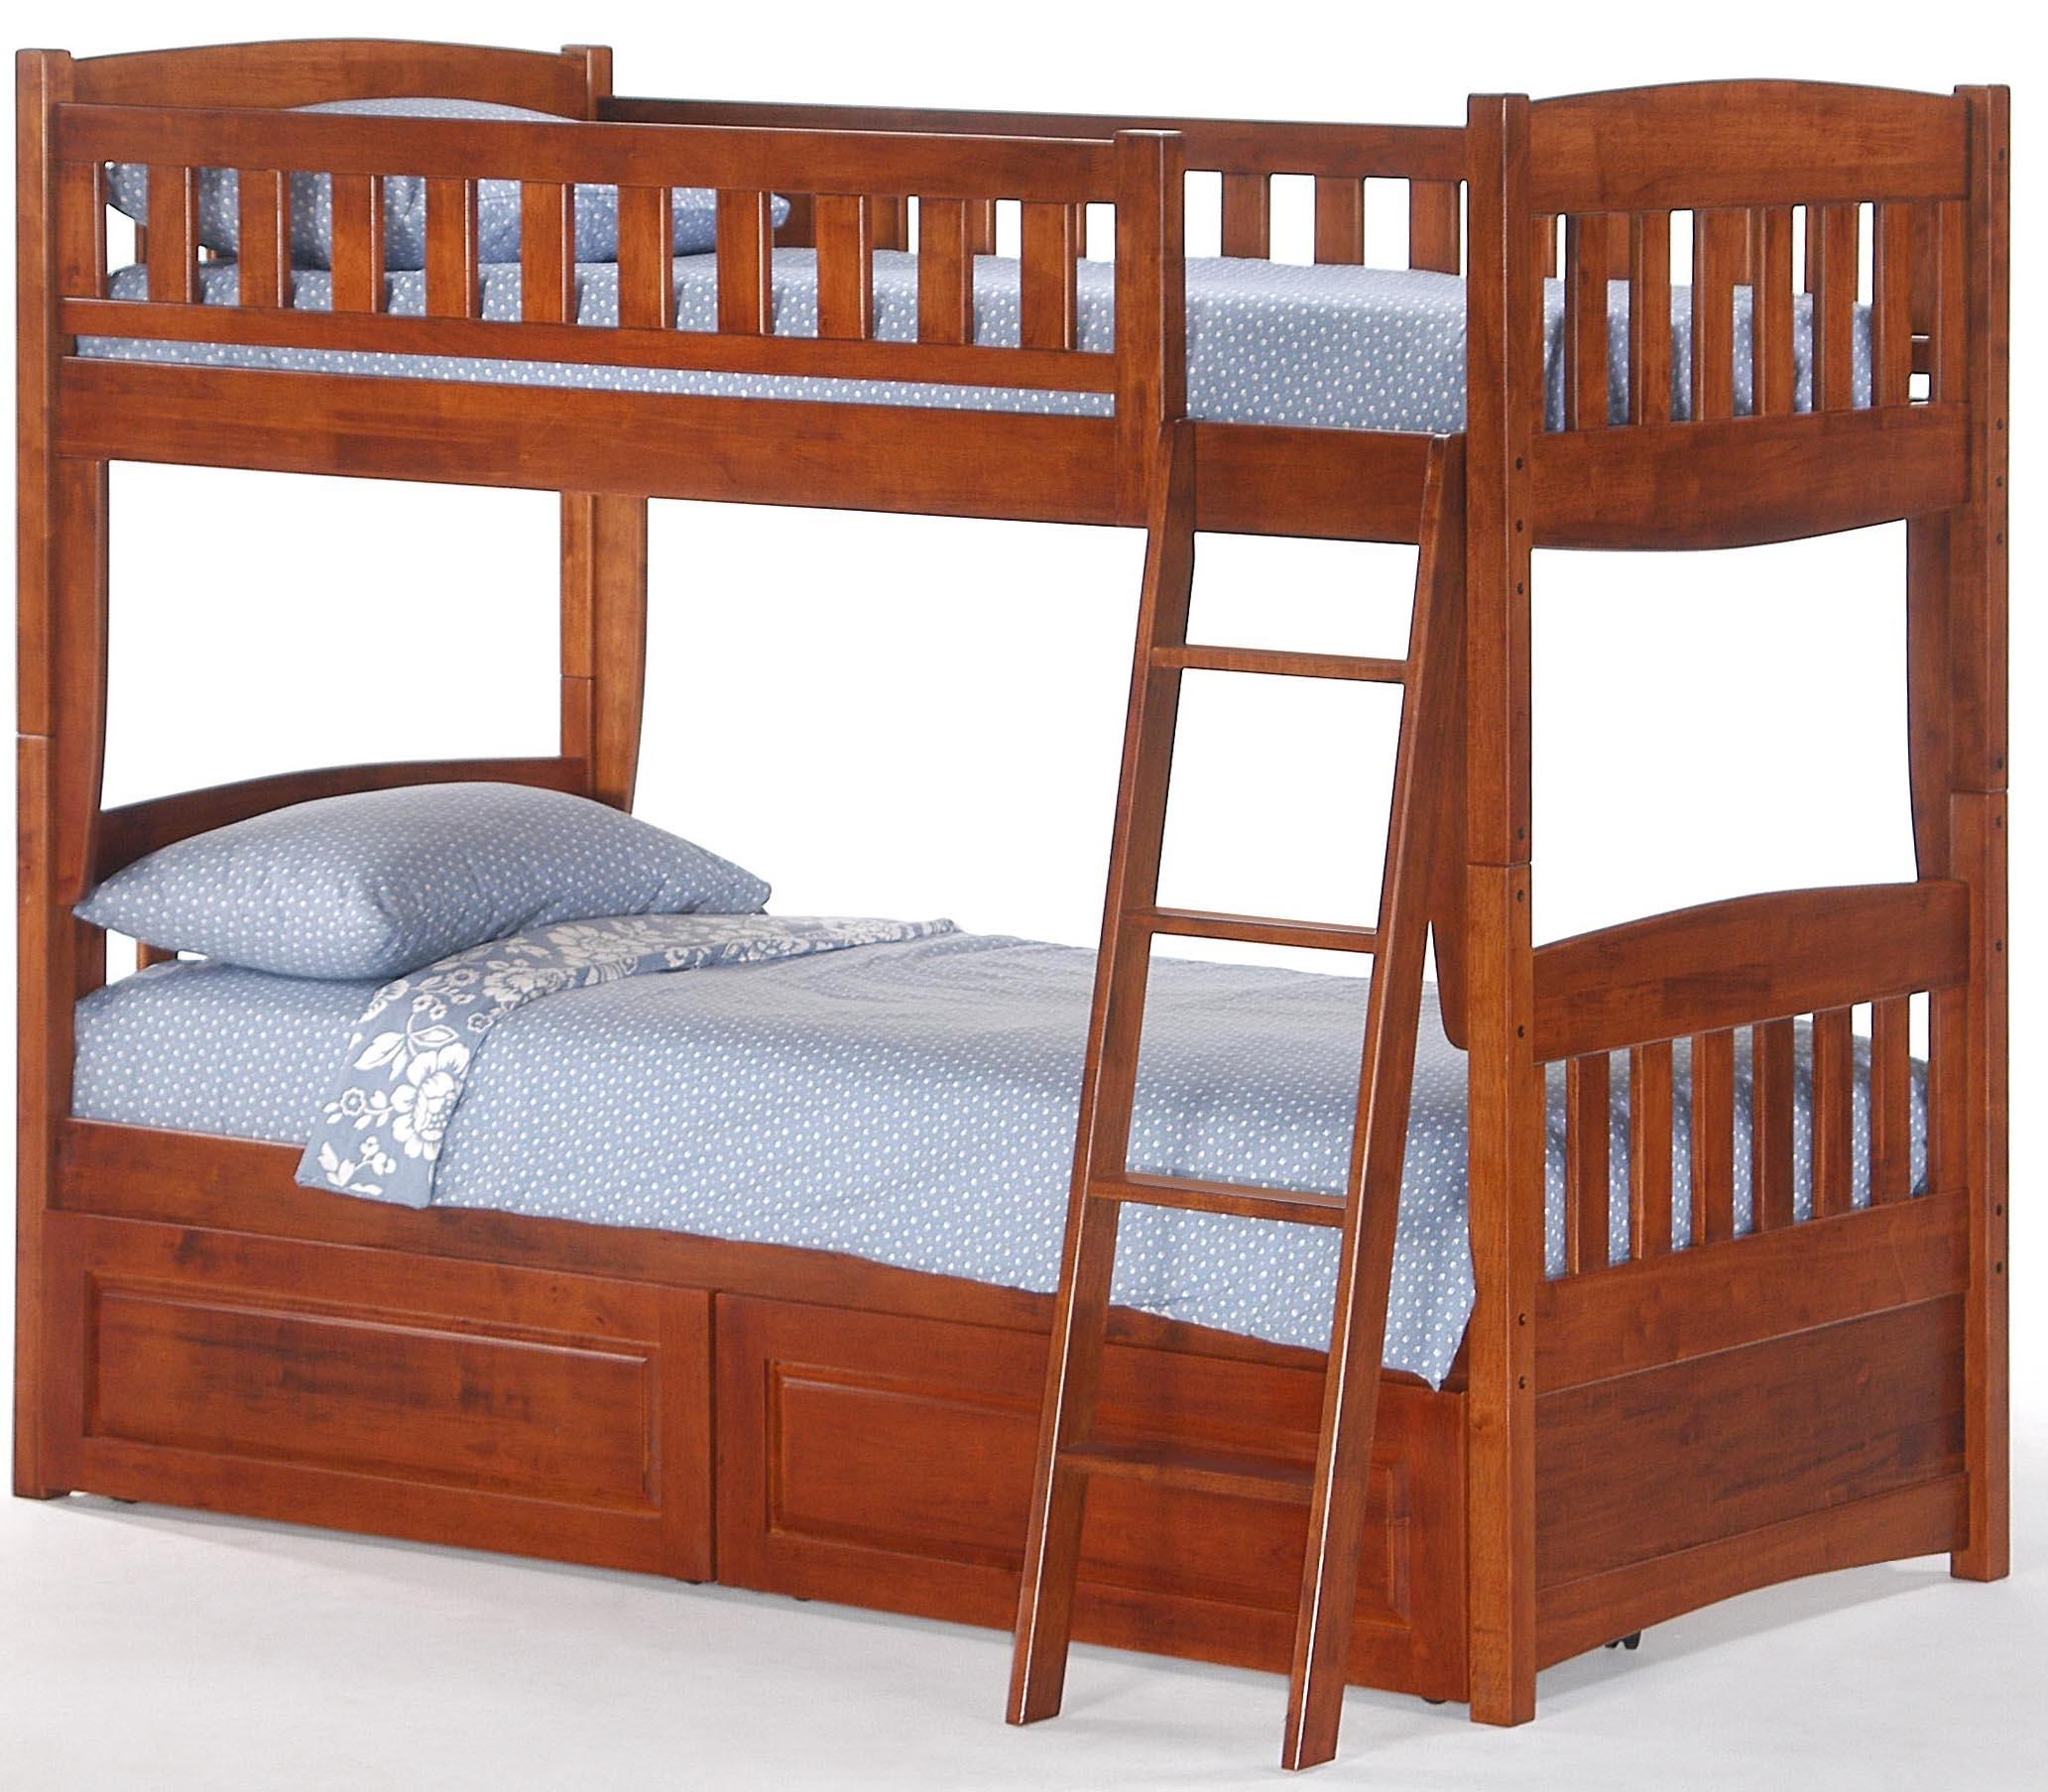 Night U0026 Day Furniture SpiceTwin Bunk Bed With Storage Drawers ...